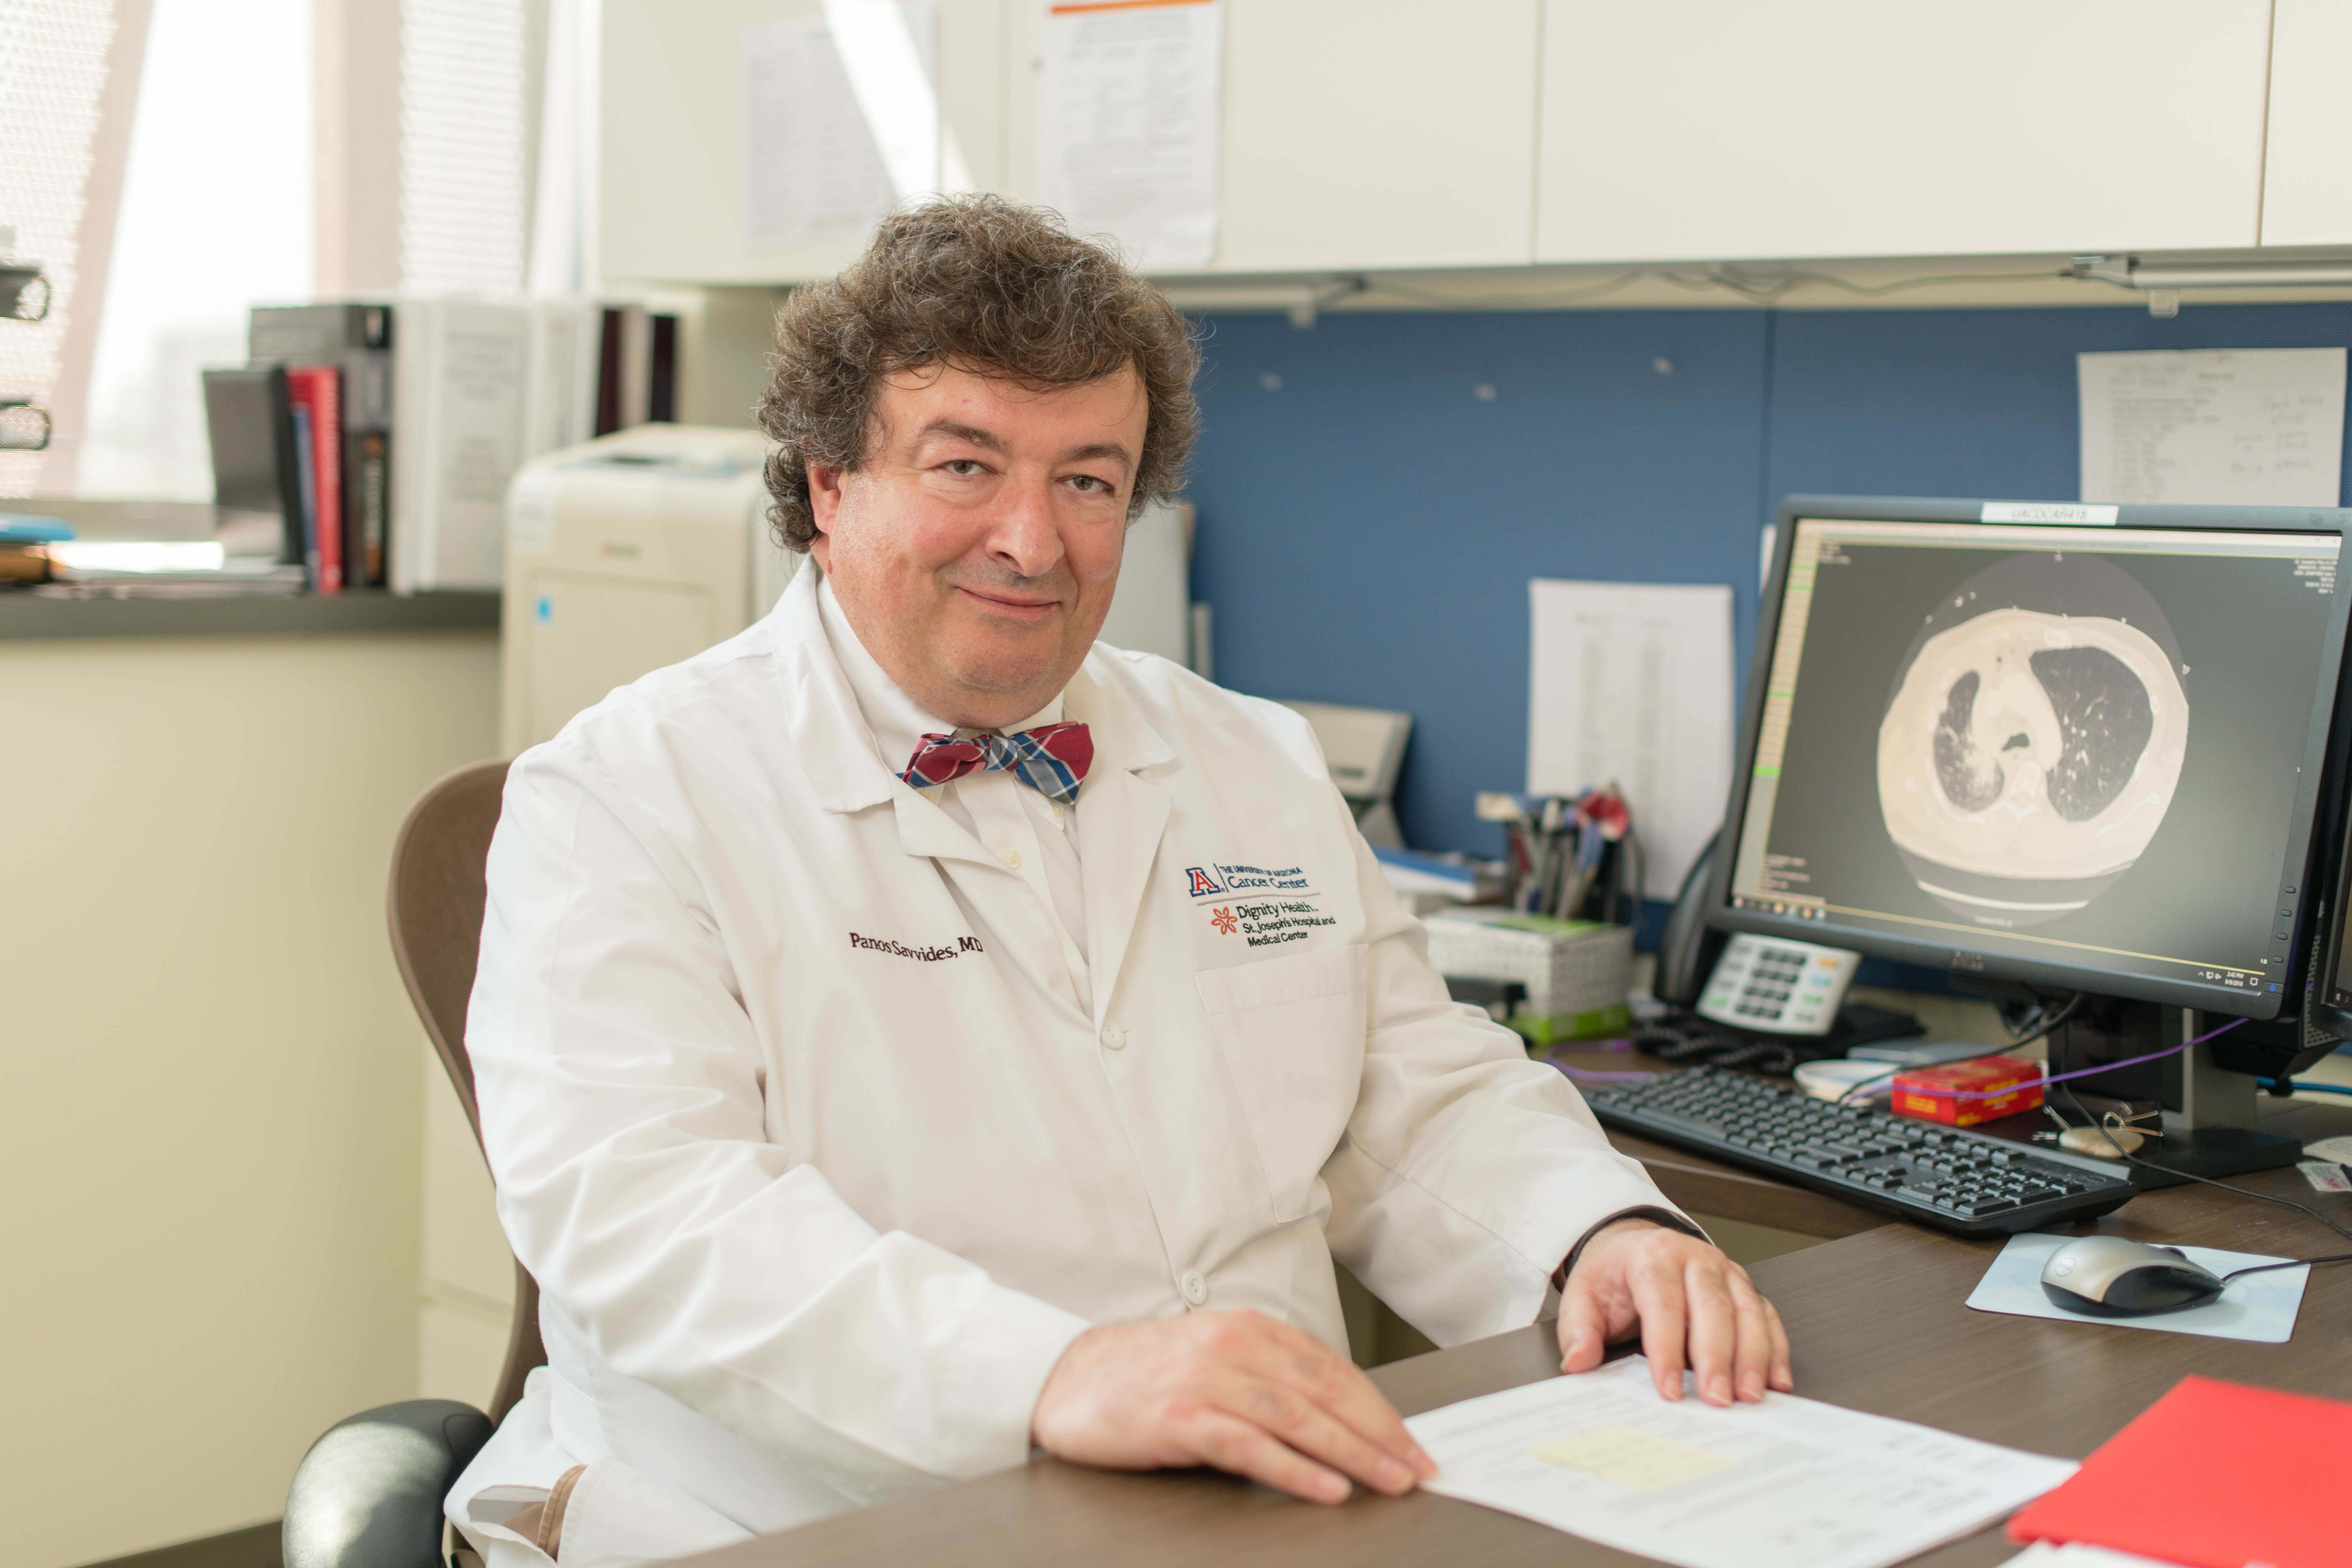 Panayiotis Savvides, MD, PhD, MPH (credit: Tabbs Mosier, UA College of Medicine - Phoenix)